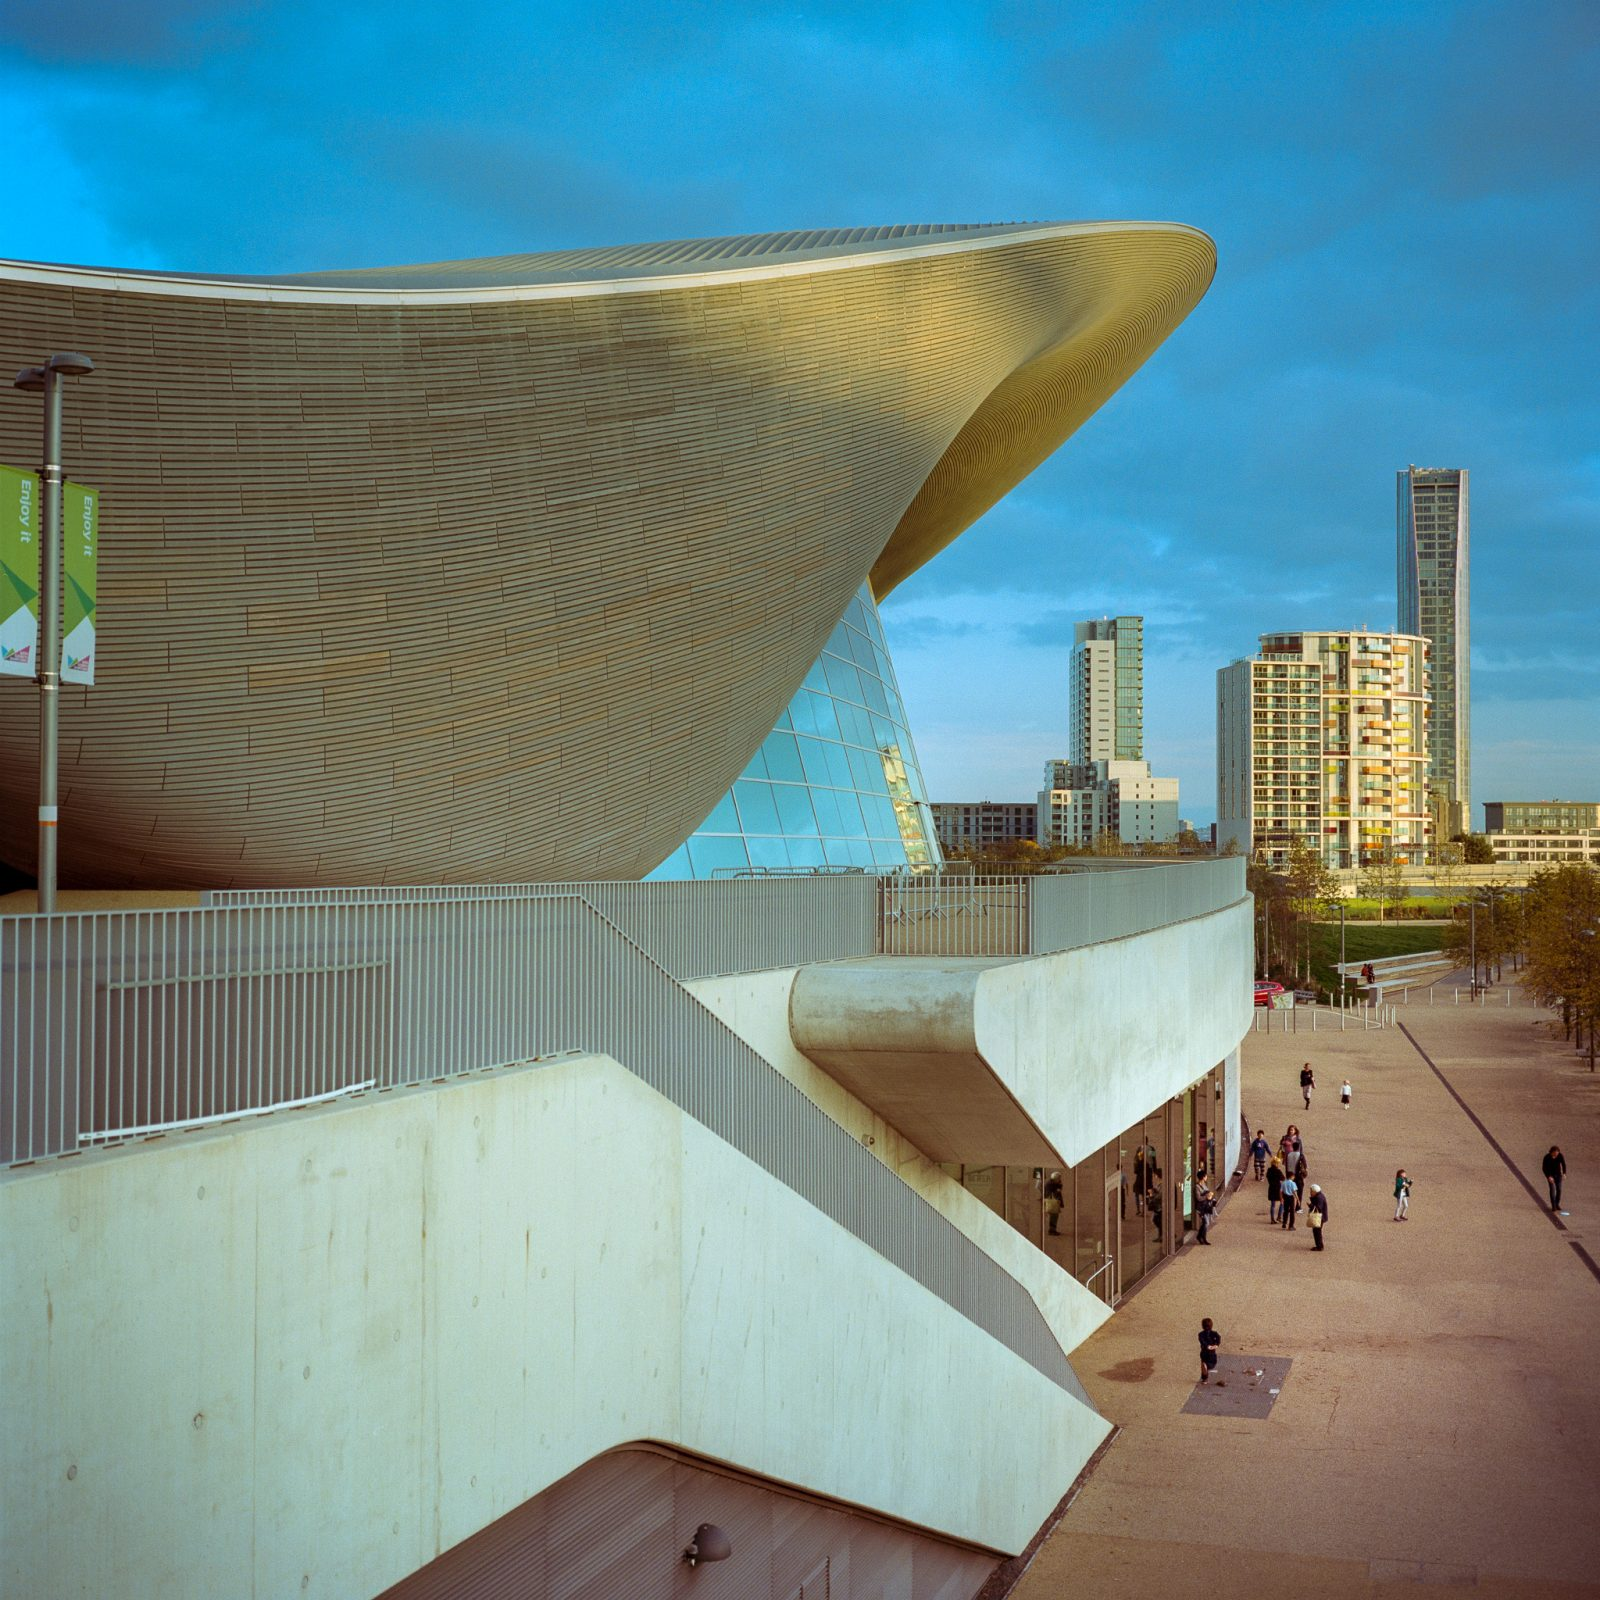 London Aquatic Centre, QEOP